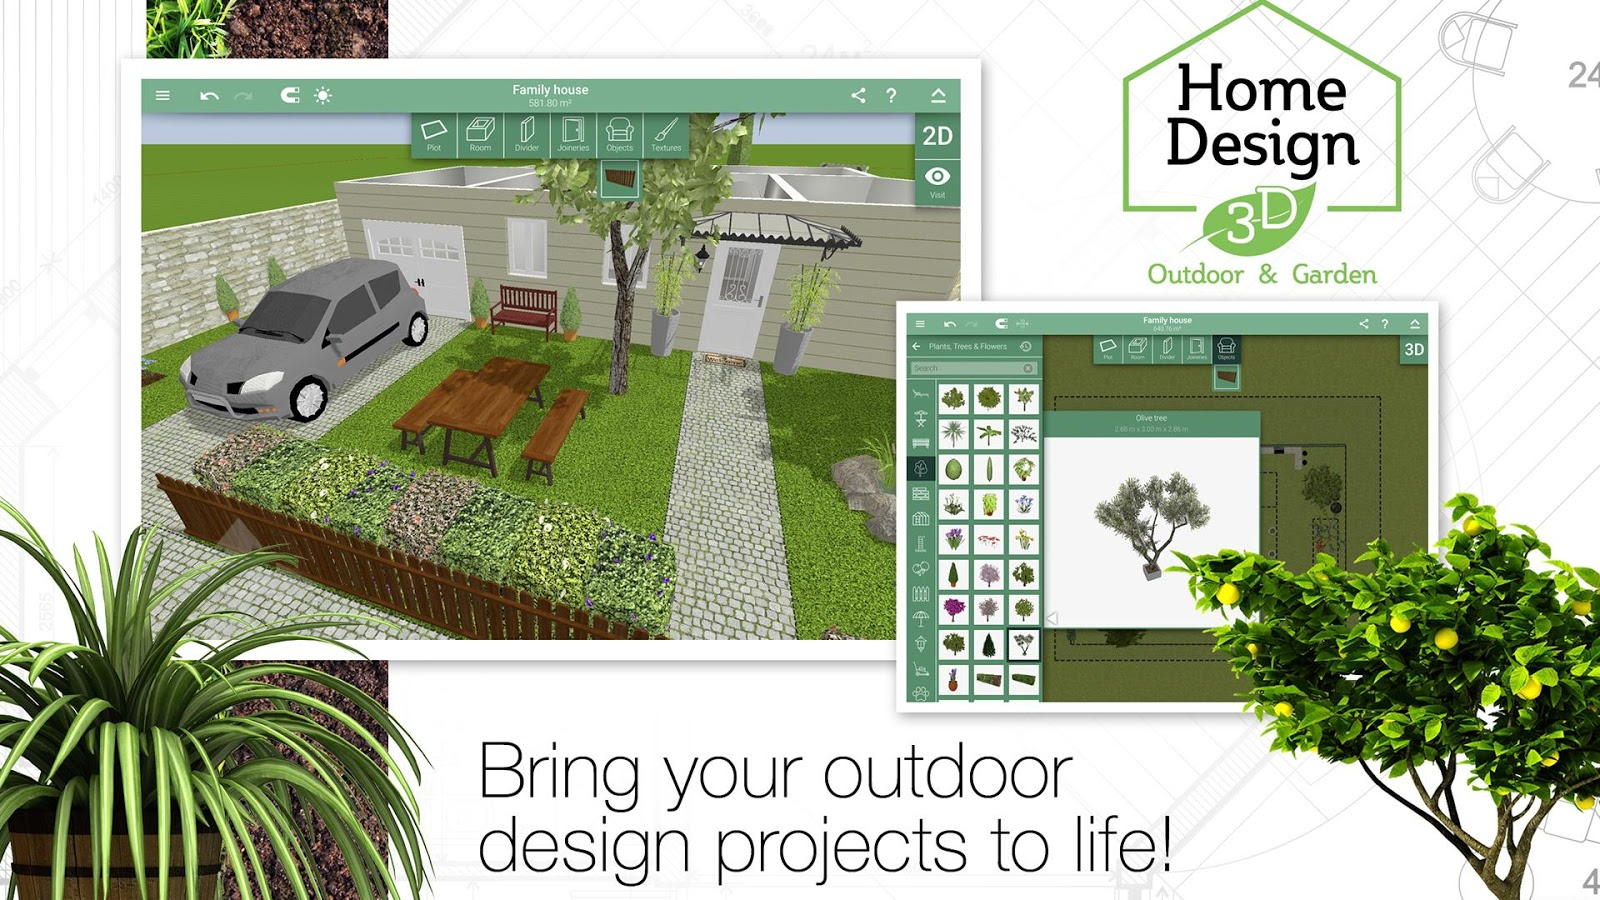 Home design 3d outdoor garden android apps on google play for Home garden design program